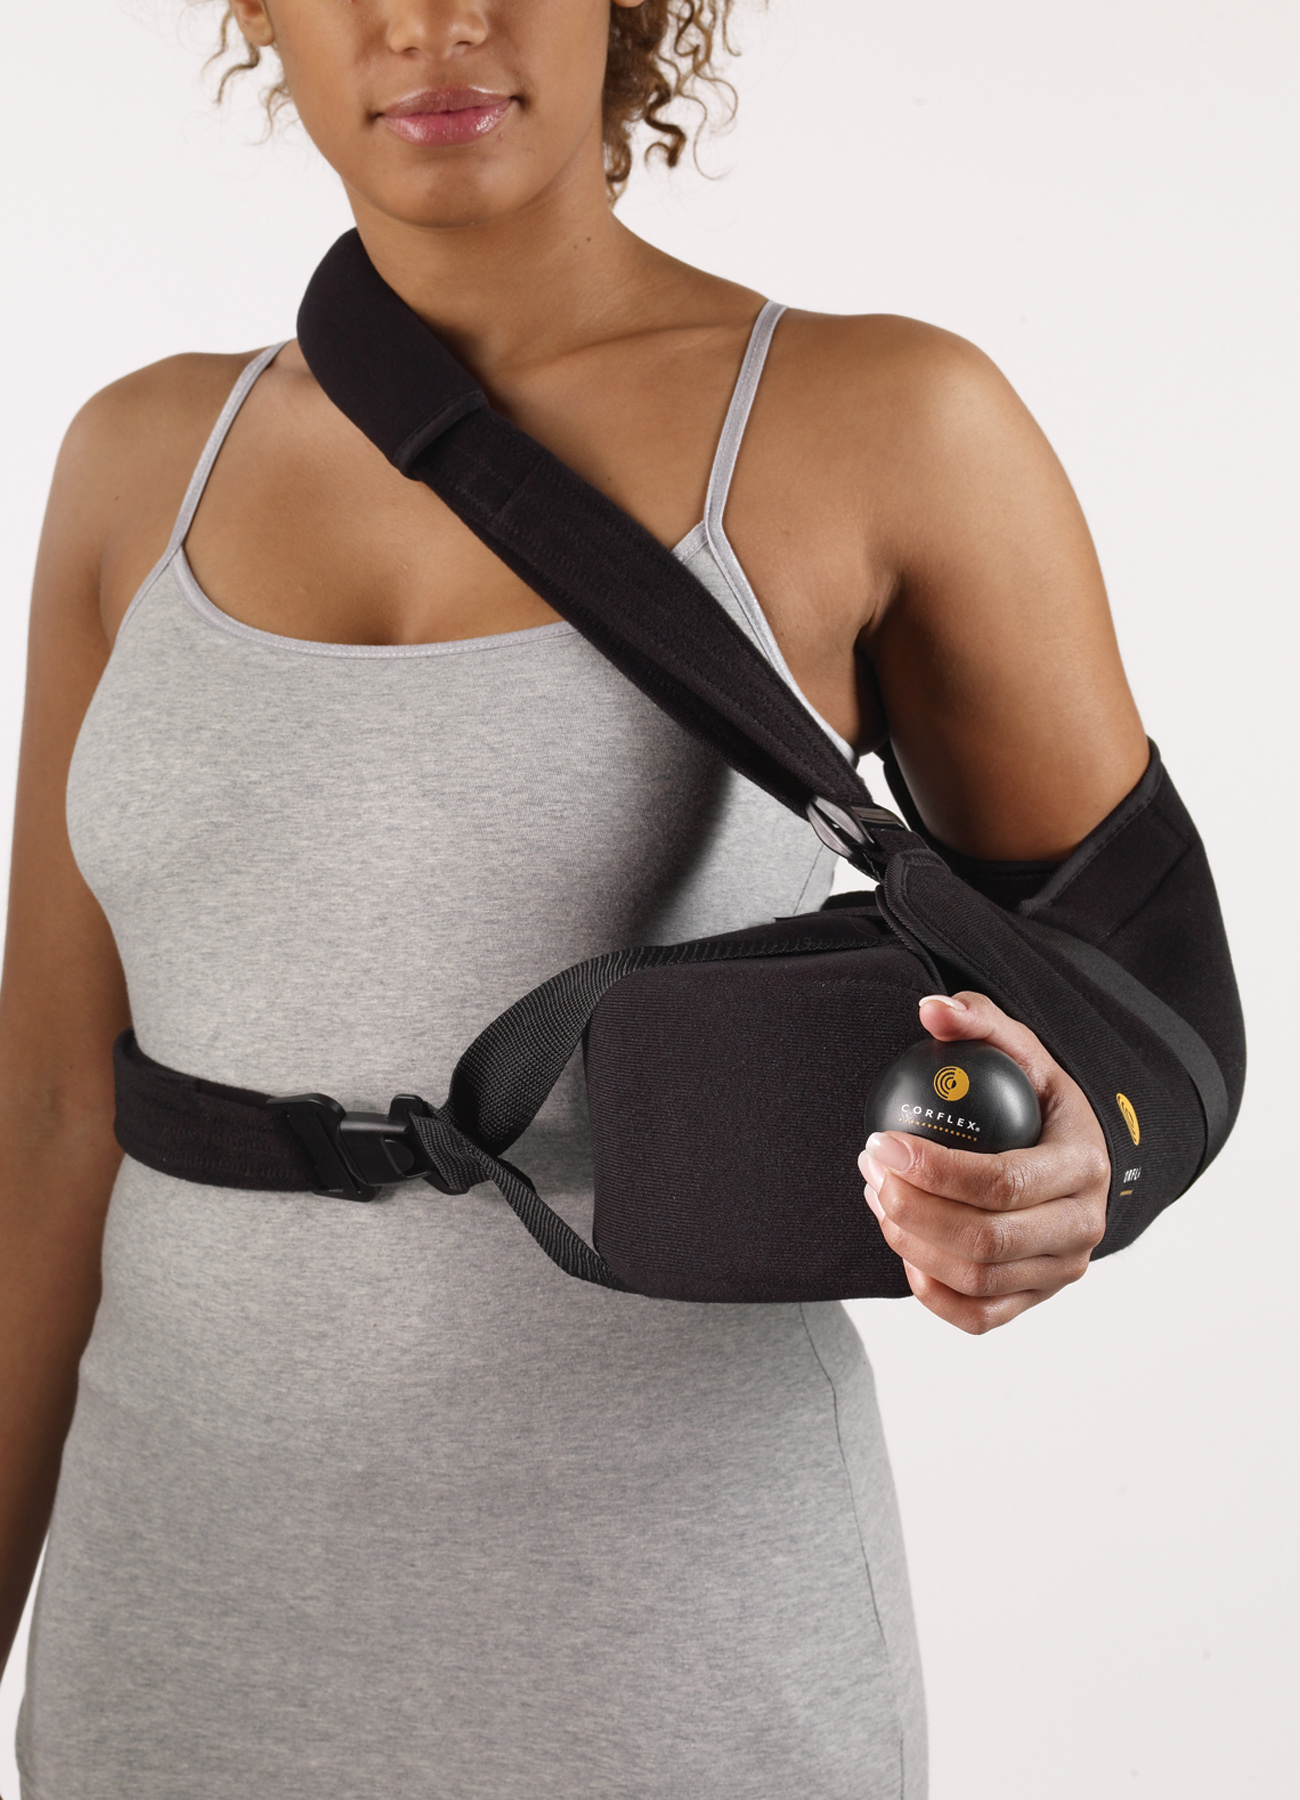 Ultra Shoulder Abduction Pillow w/Sling